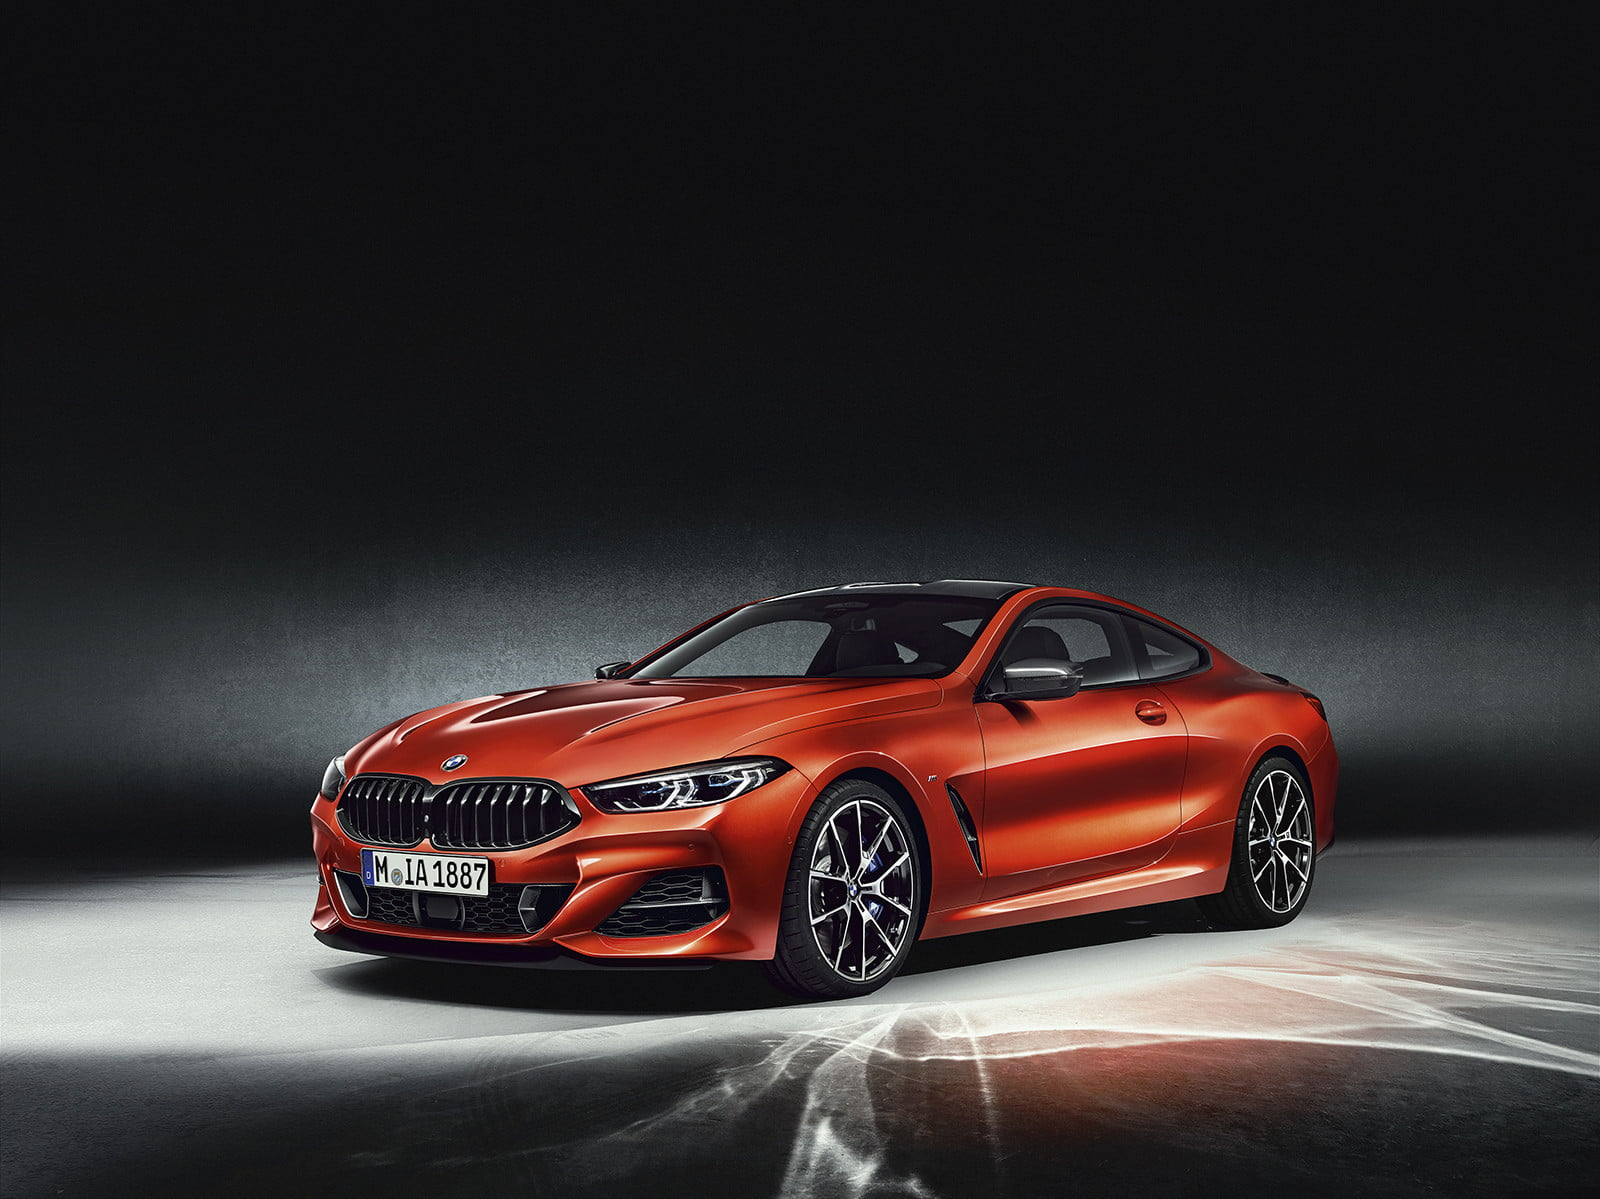 Bmw S Flagship Luxury Coupe Returns After A 20 Year Hiatus